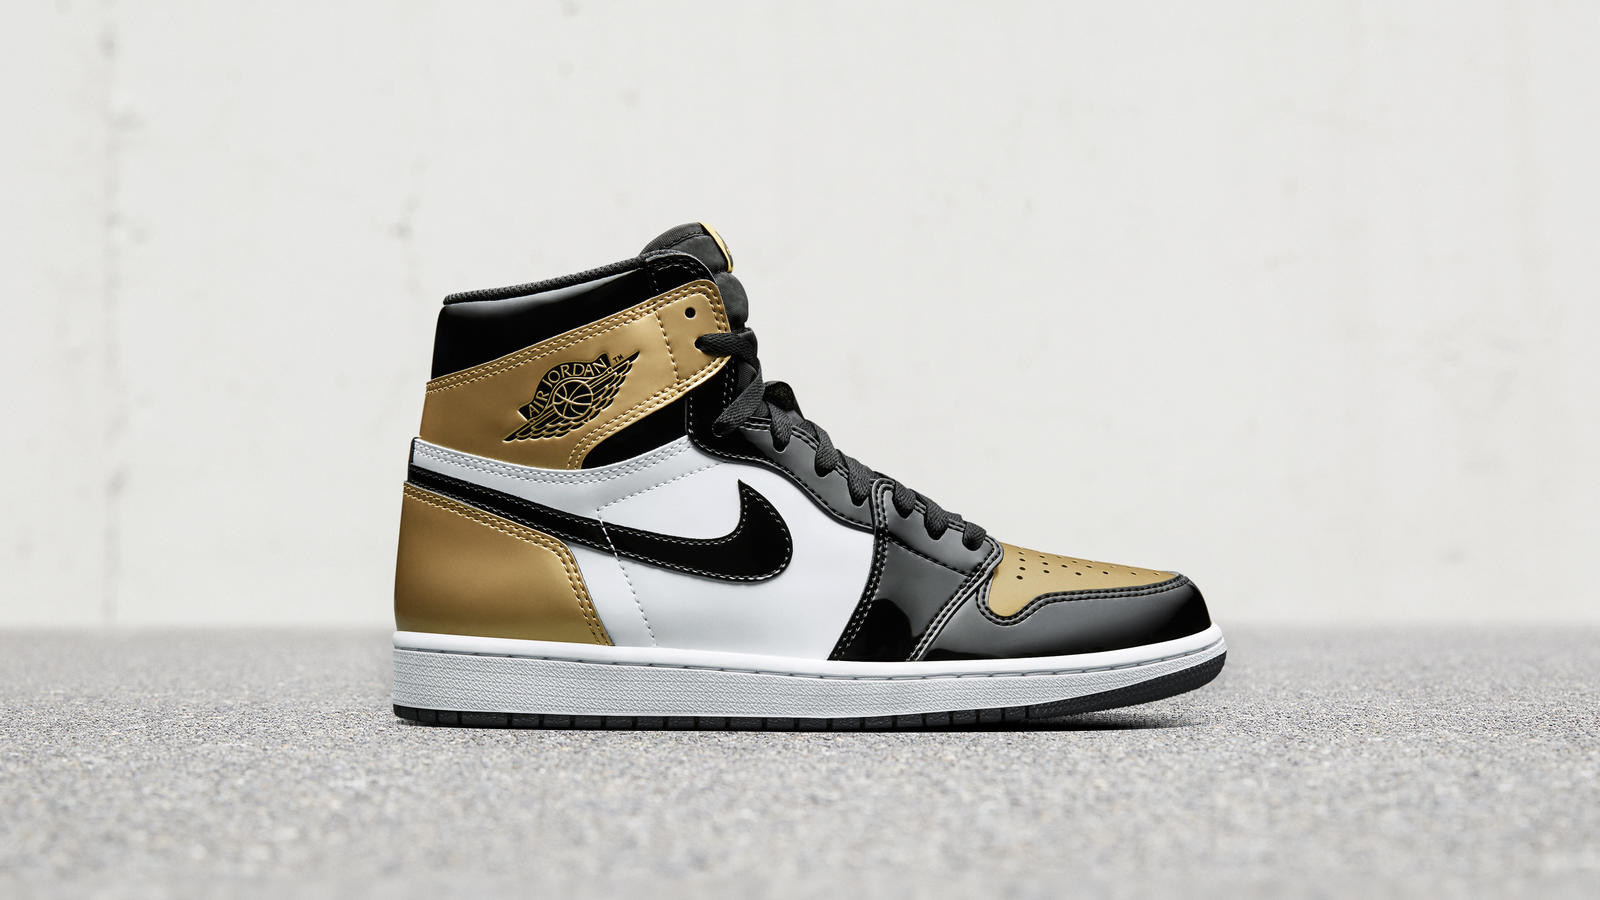 Gold jordan 1 top 3 04 native 1600